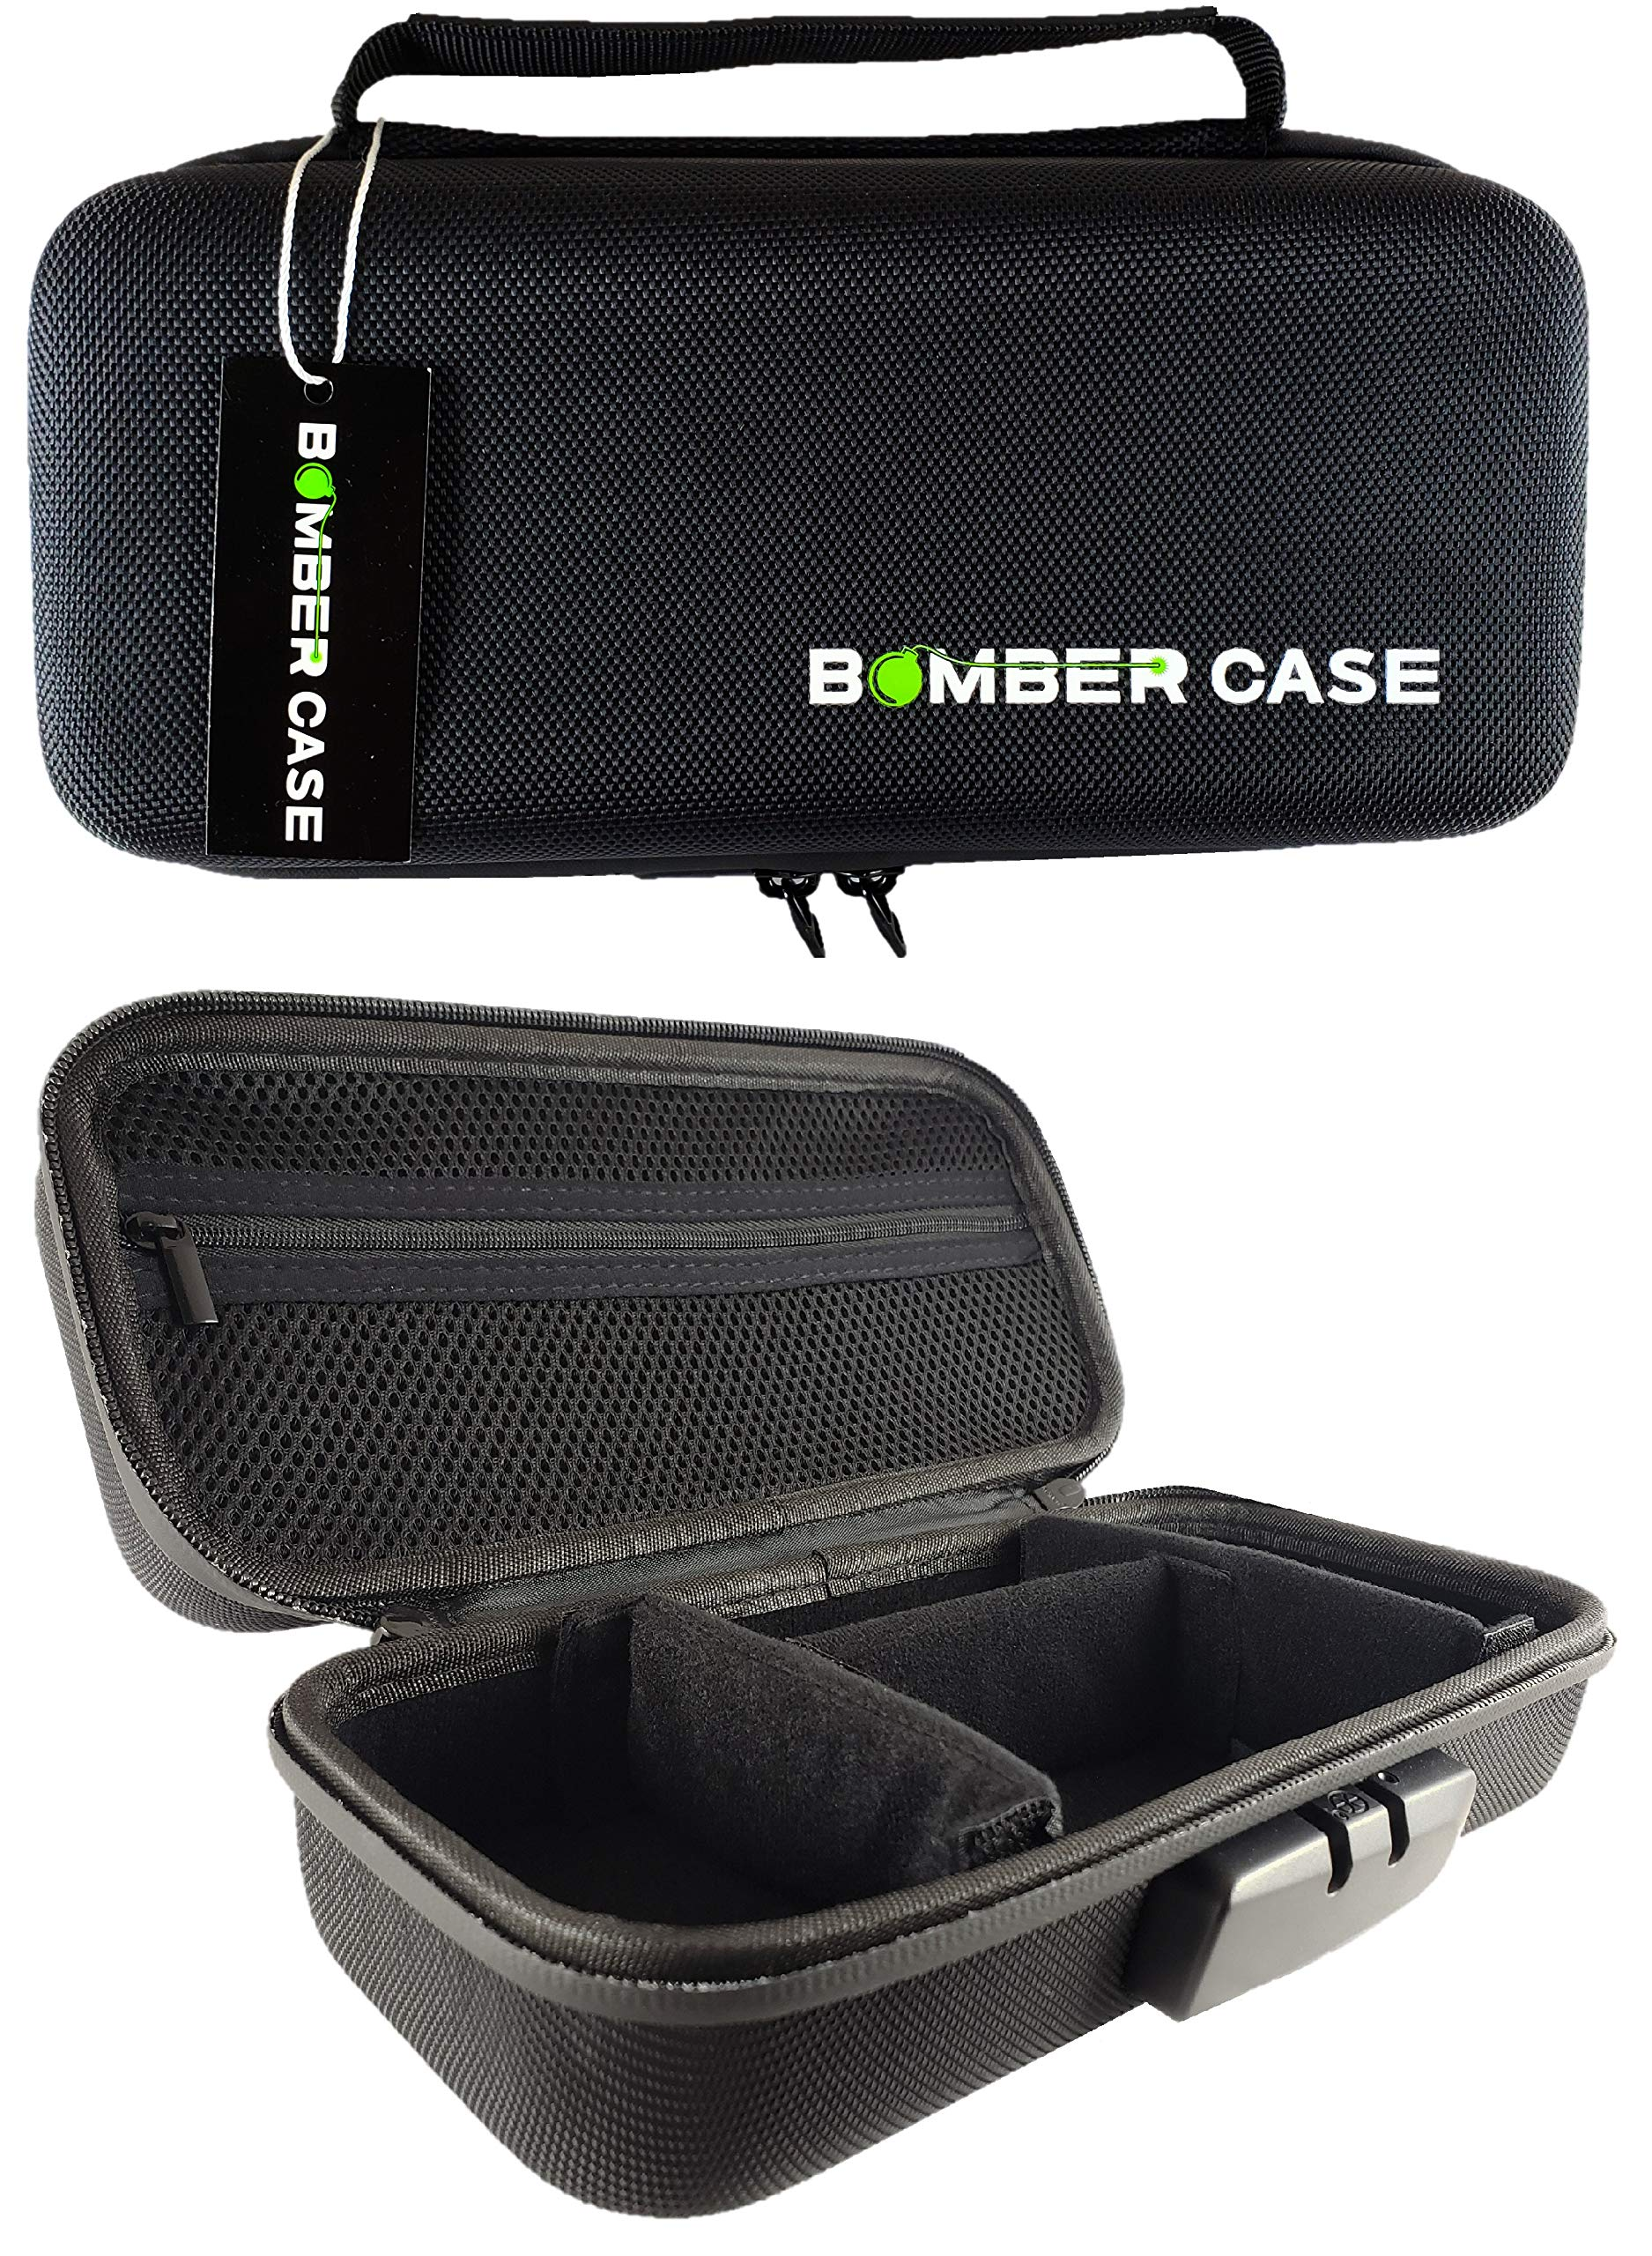 BOMBER CASE - Stash Case - Locking - Smell Proof - Customizable Padded Interior - Fits up to 9.5'' x 4'' - Soft Sides with Odor Proof Zipper and Combination Lock - No Smell - Black